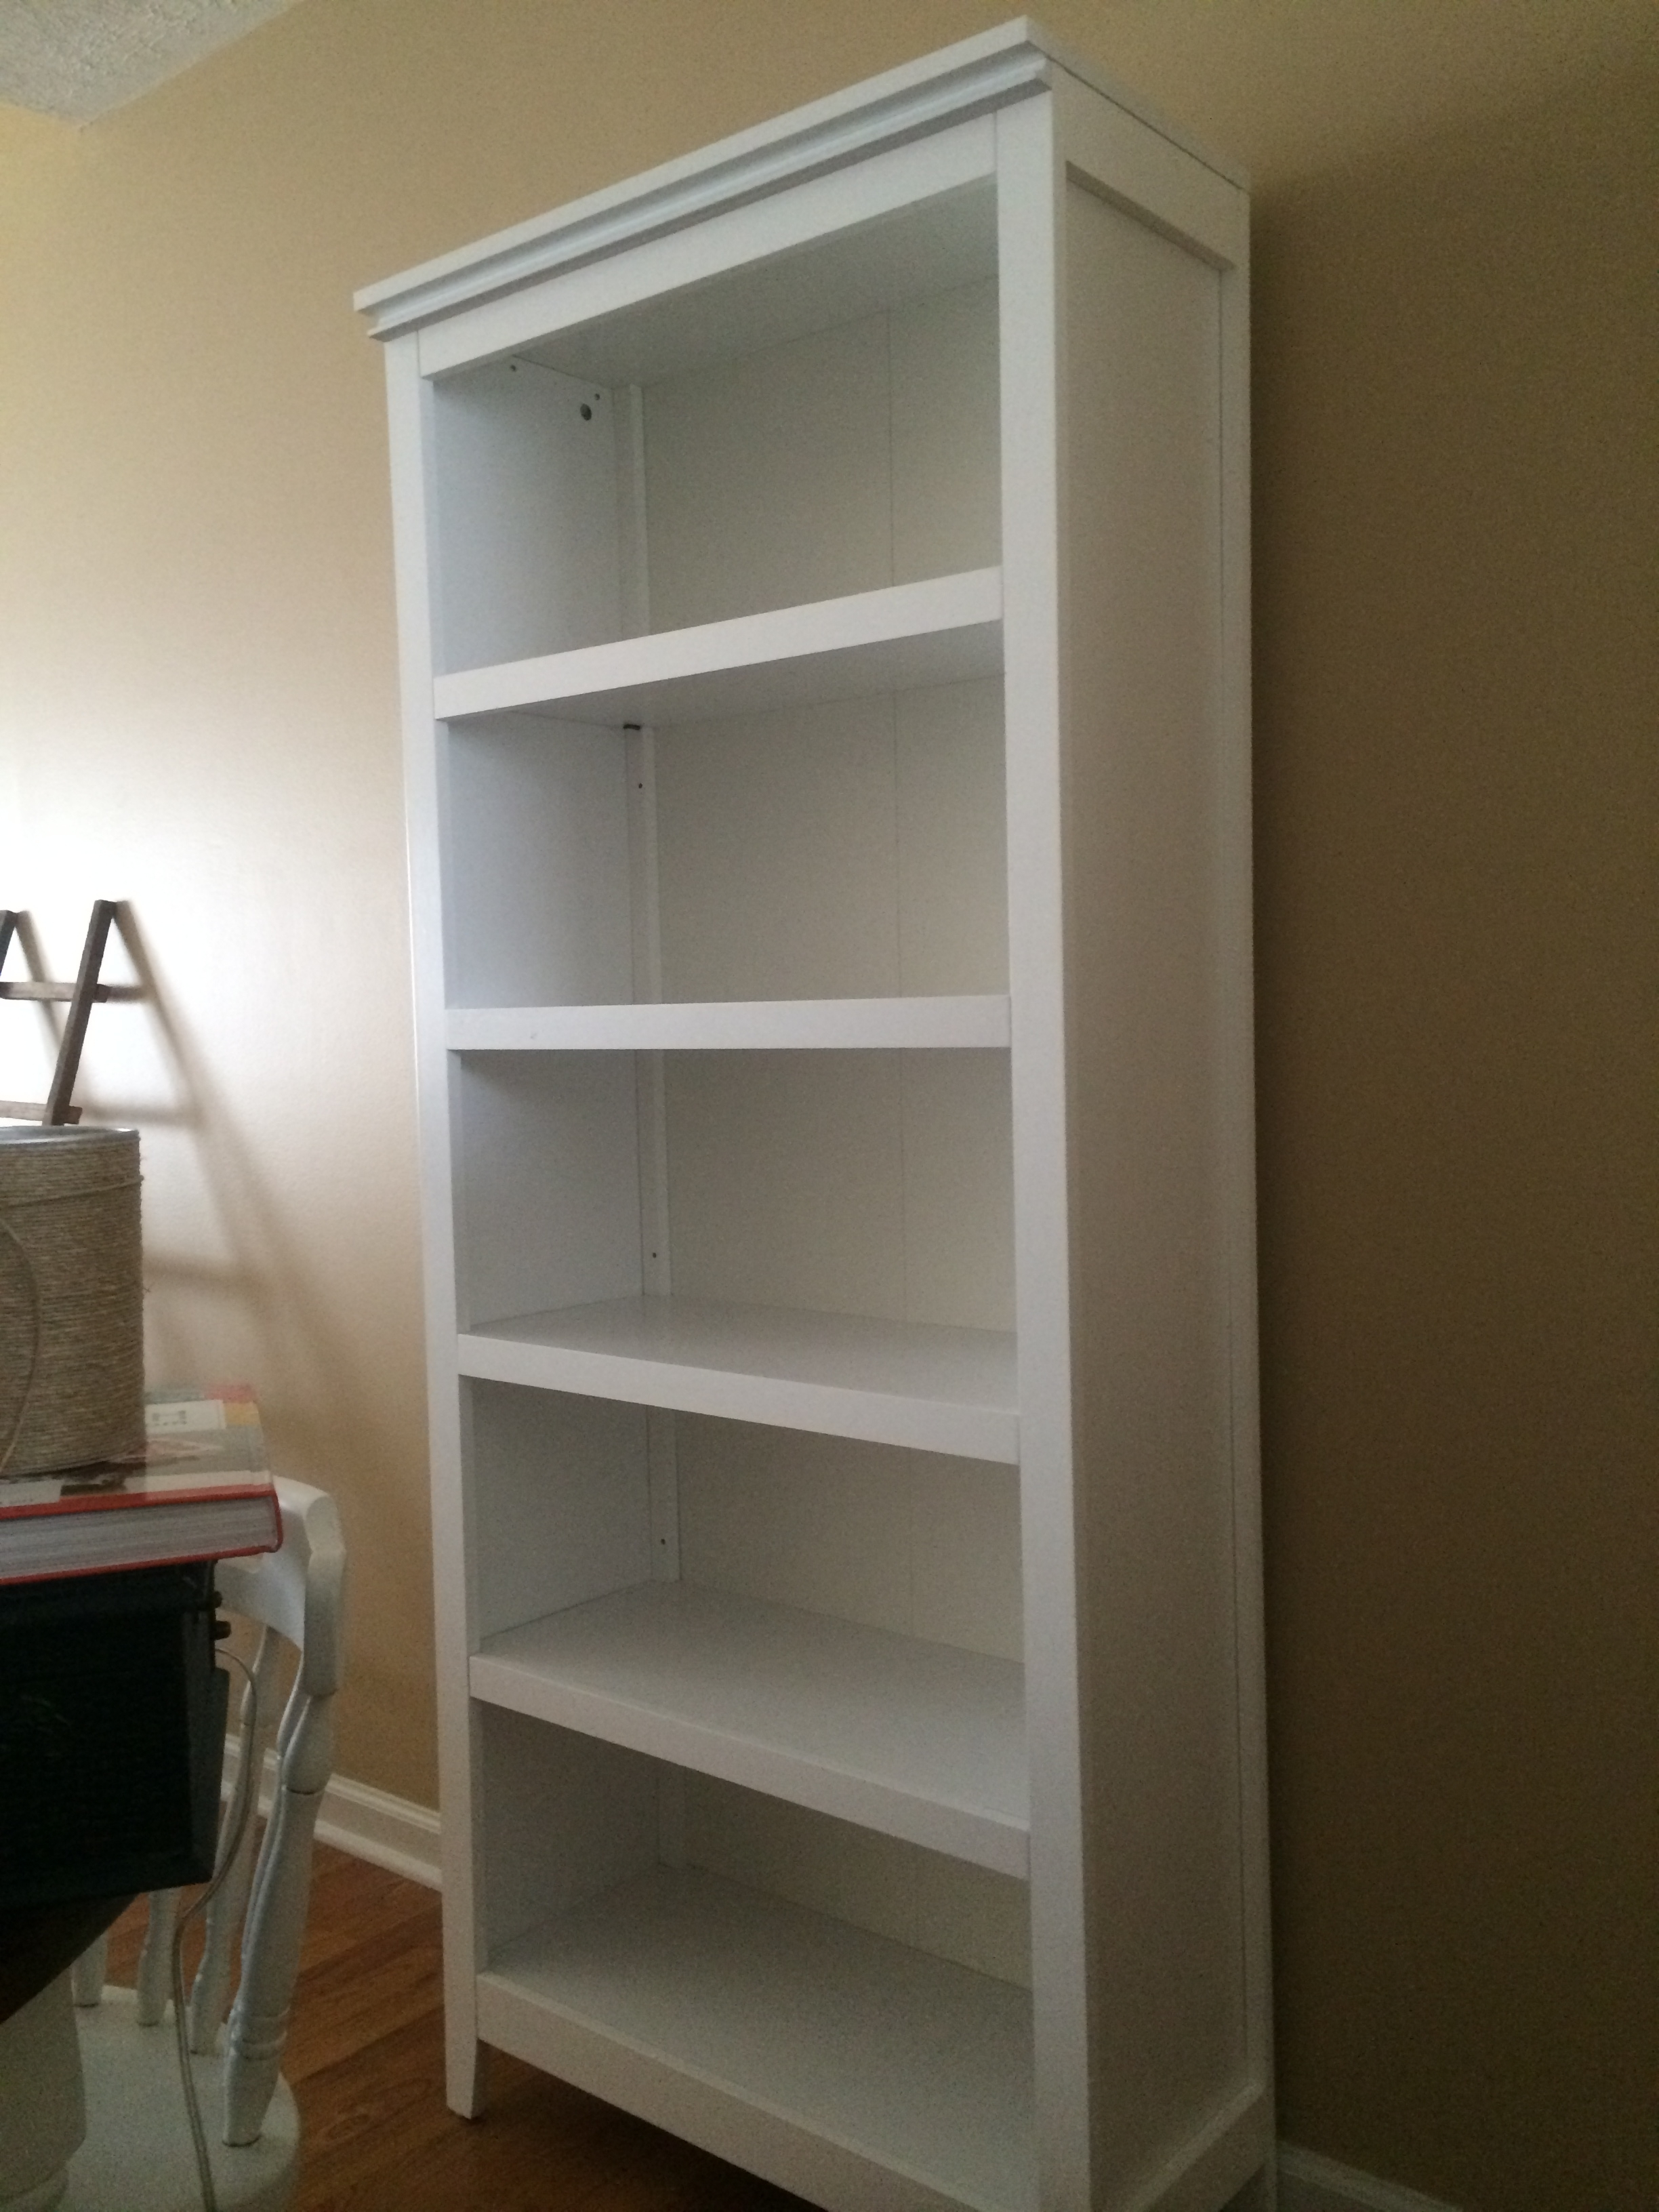 Furniture Home: Carson Threshold Bookcase Good Shelf For Cube With Latest Threshold Carson Bookcases (View 4 of 15)